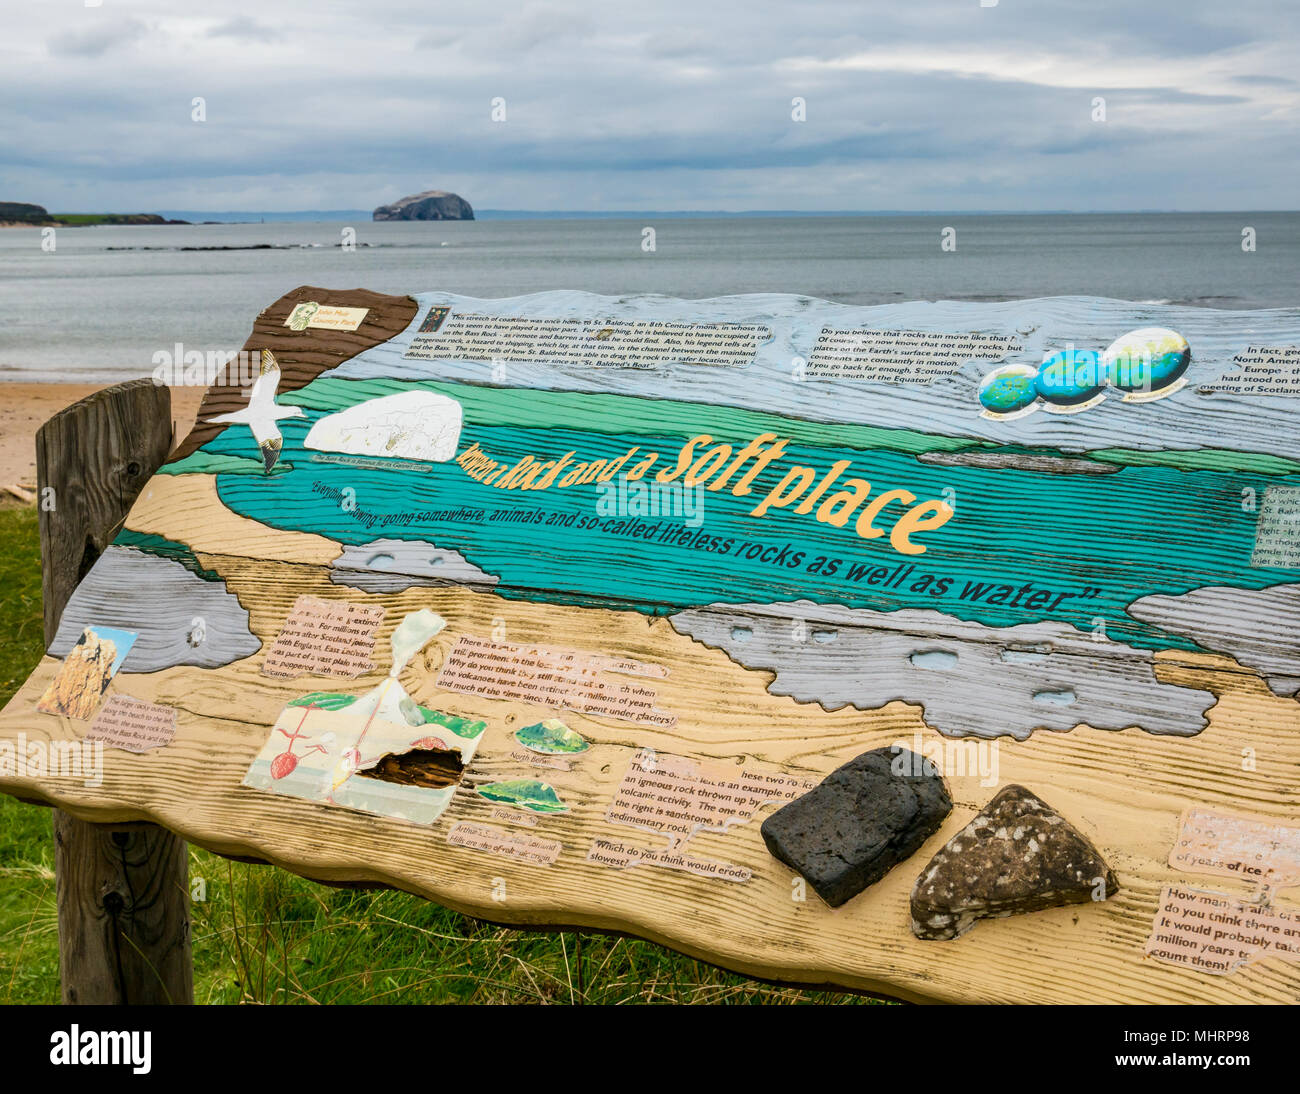 Ravensheugh Sands, East Lothian, Scotland, United Kingdom, May 2nd 2018. No-one on the beach with an information board in the dunes about the local geology, looking across the Firth of Forth towards the Bass Rock, home to the world's largest Northern gannet colony - Stock Image